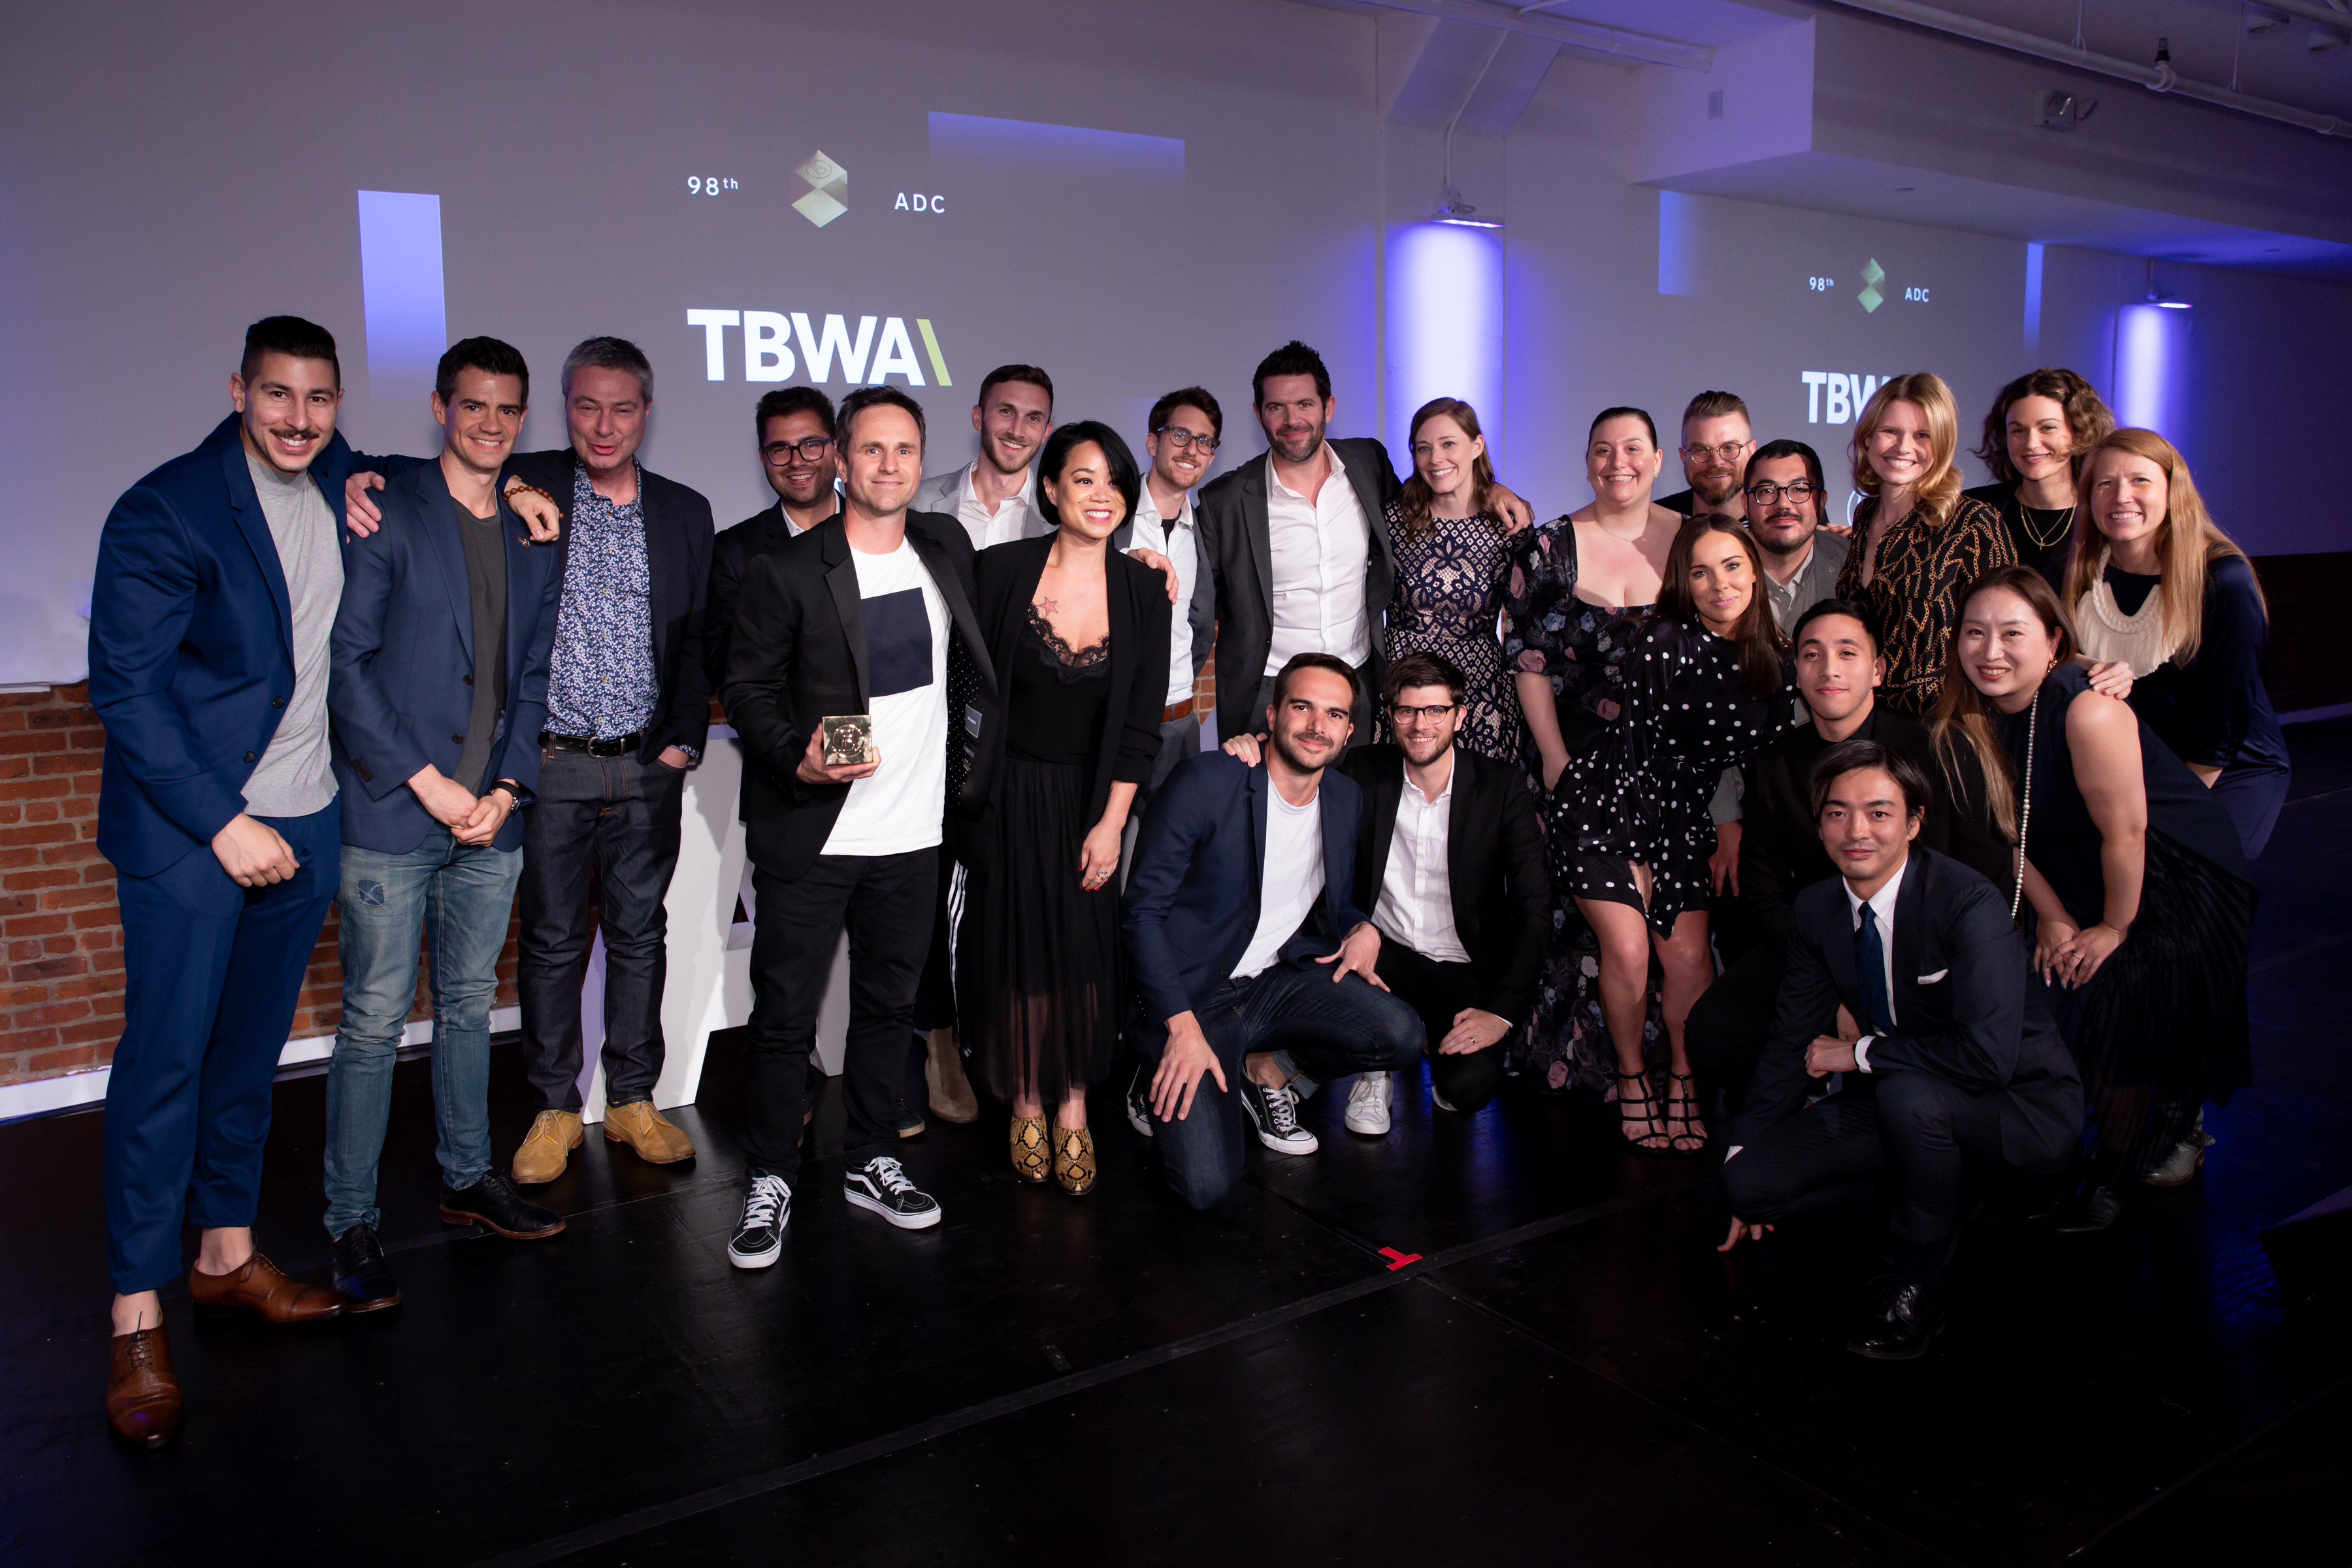 TBWA Named 2019 ADC Awards Network of the Year